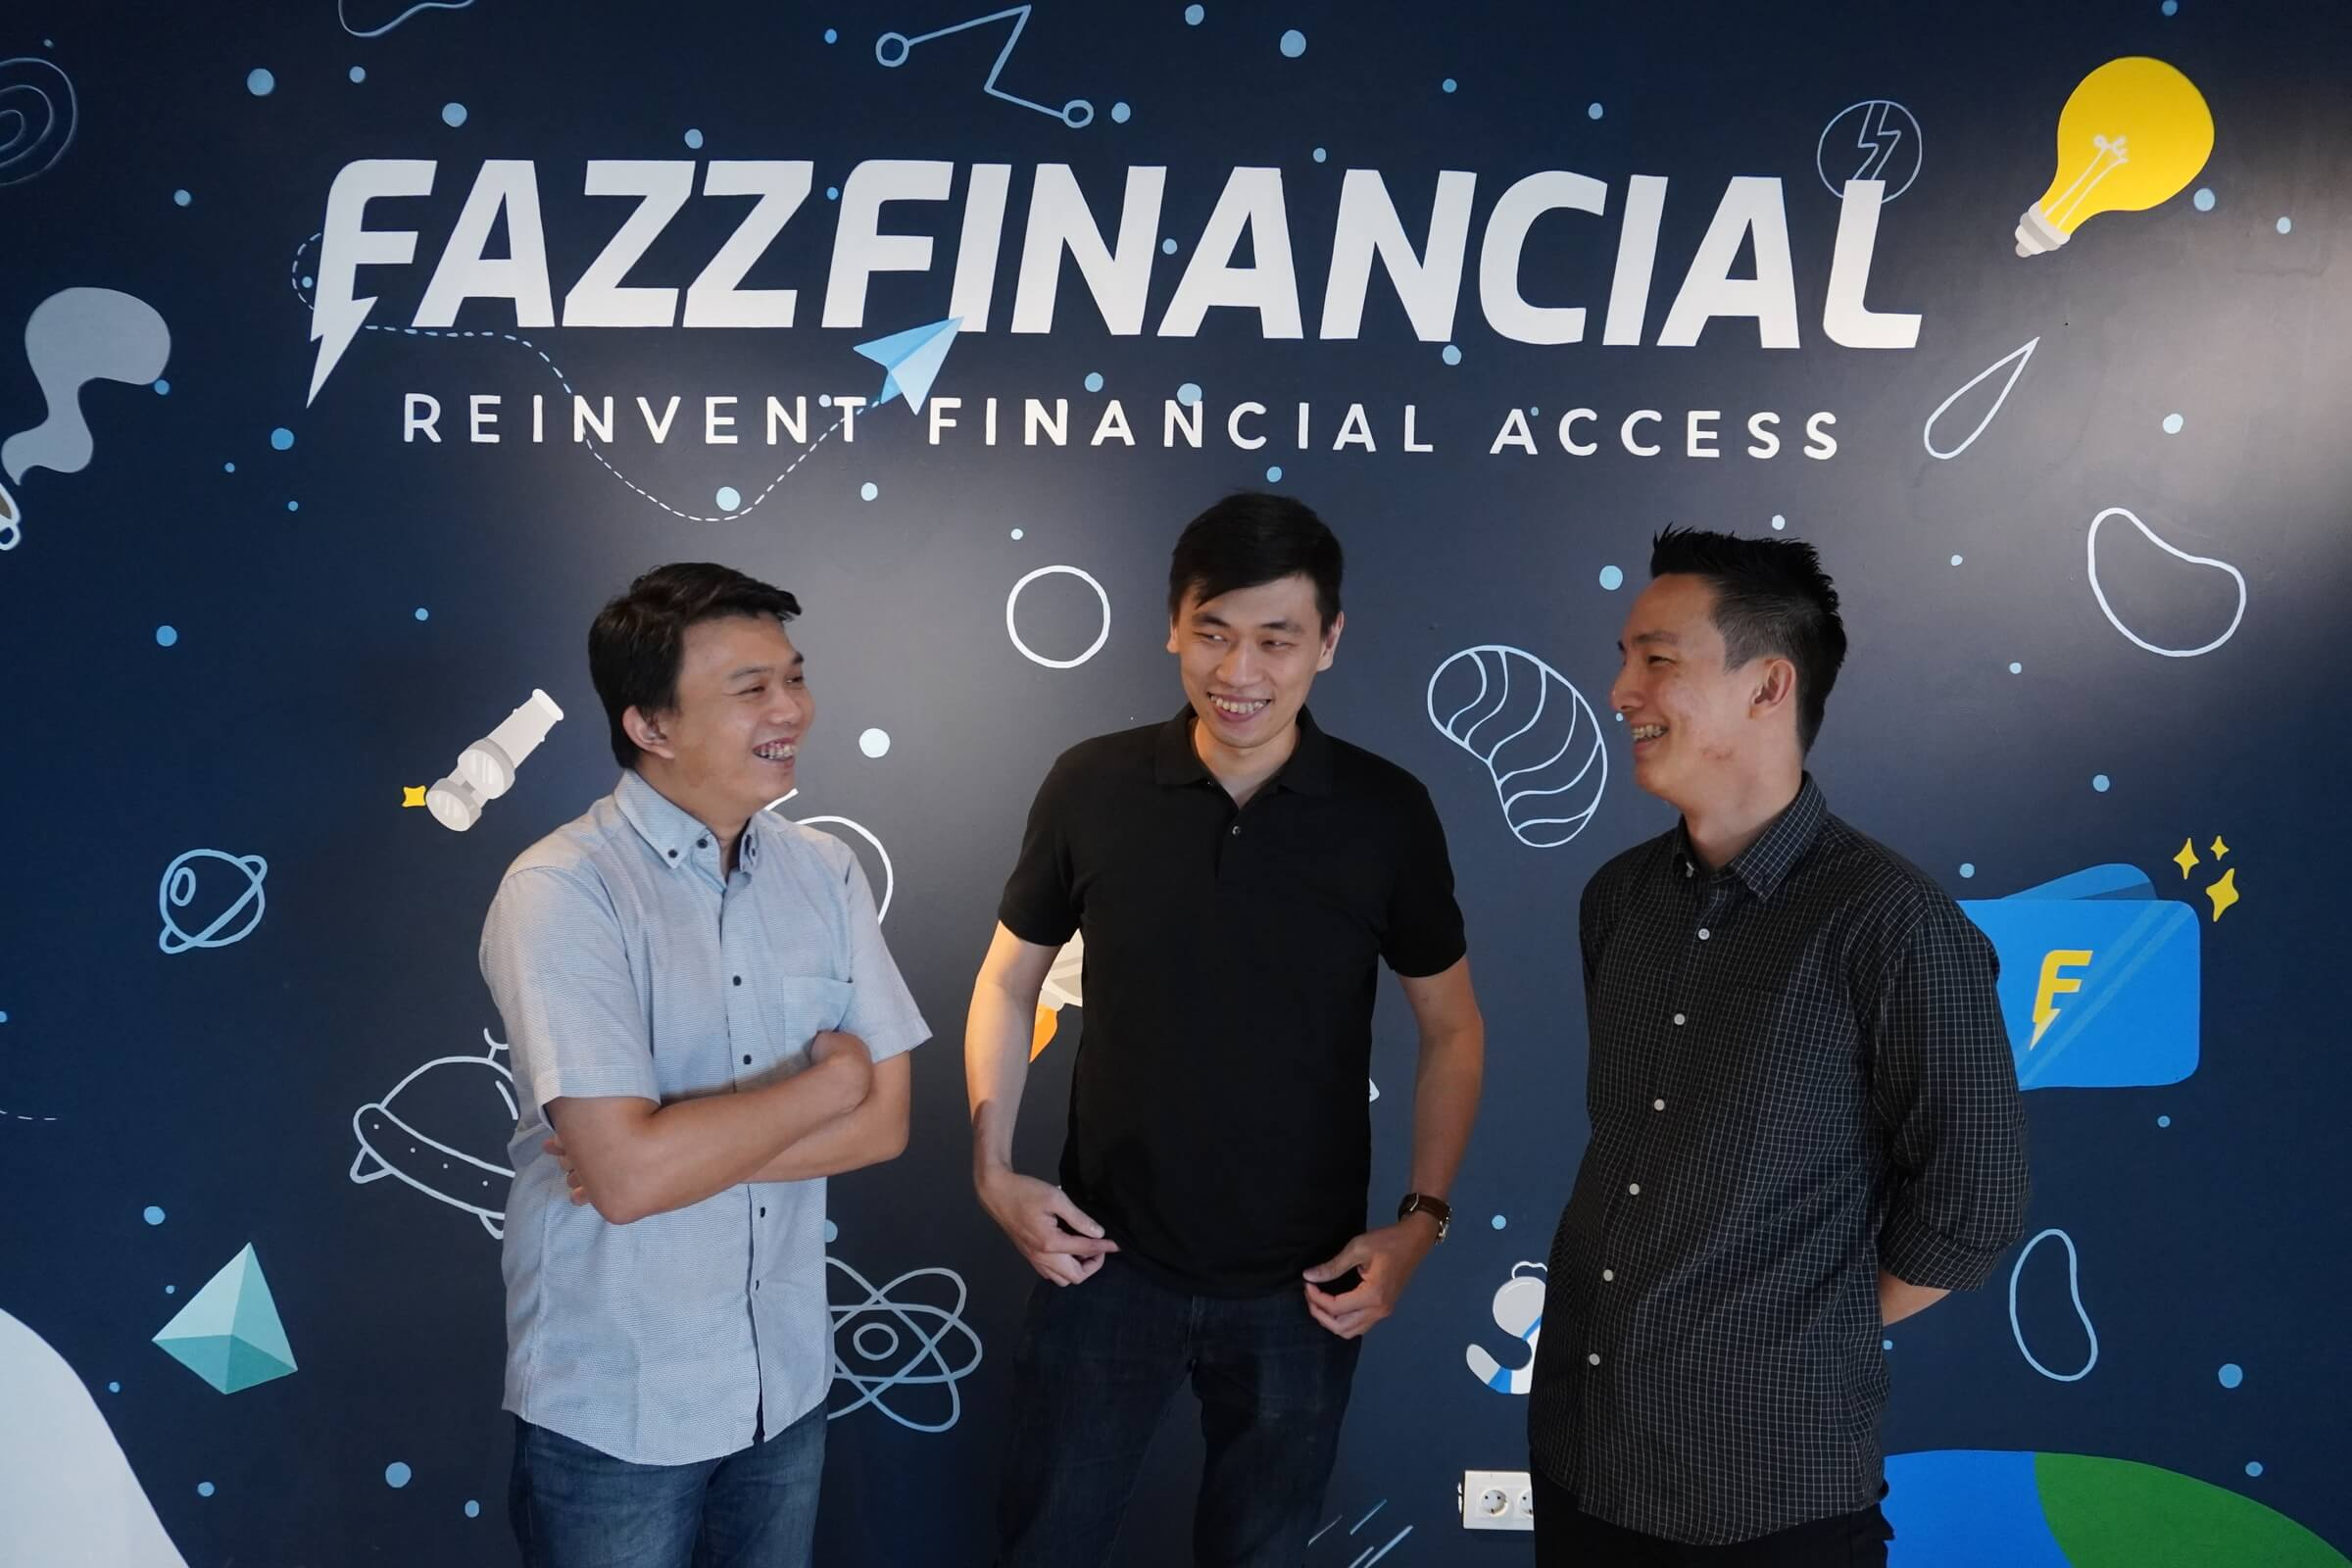 Payfazz Indonesian Startup Y Combinator Companies